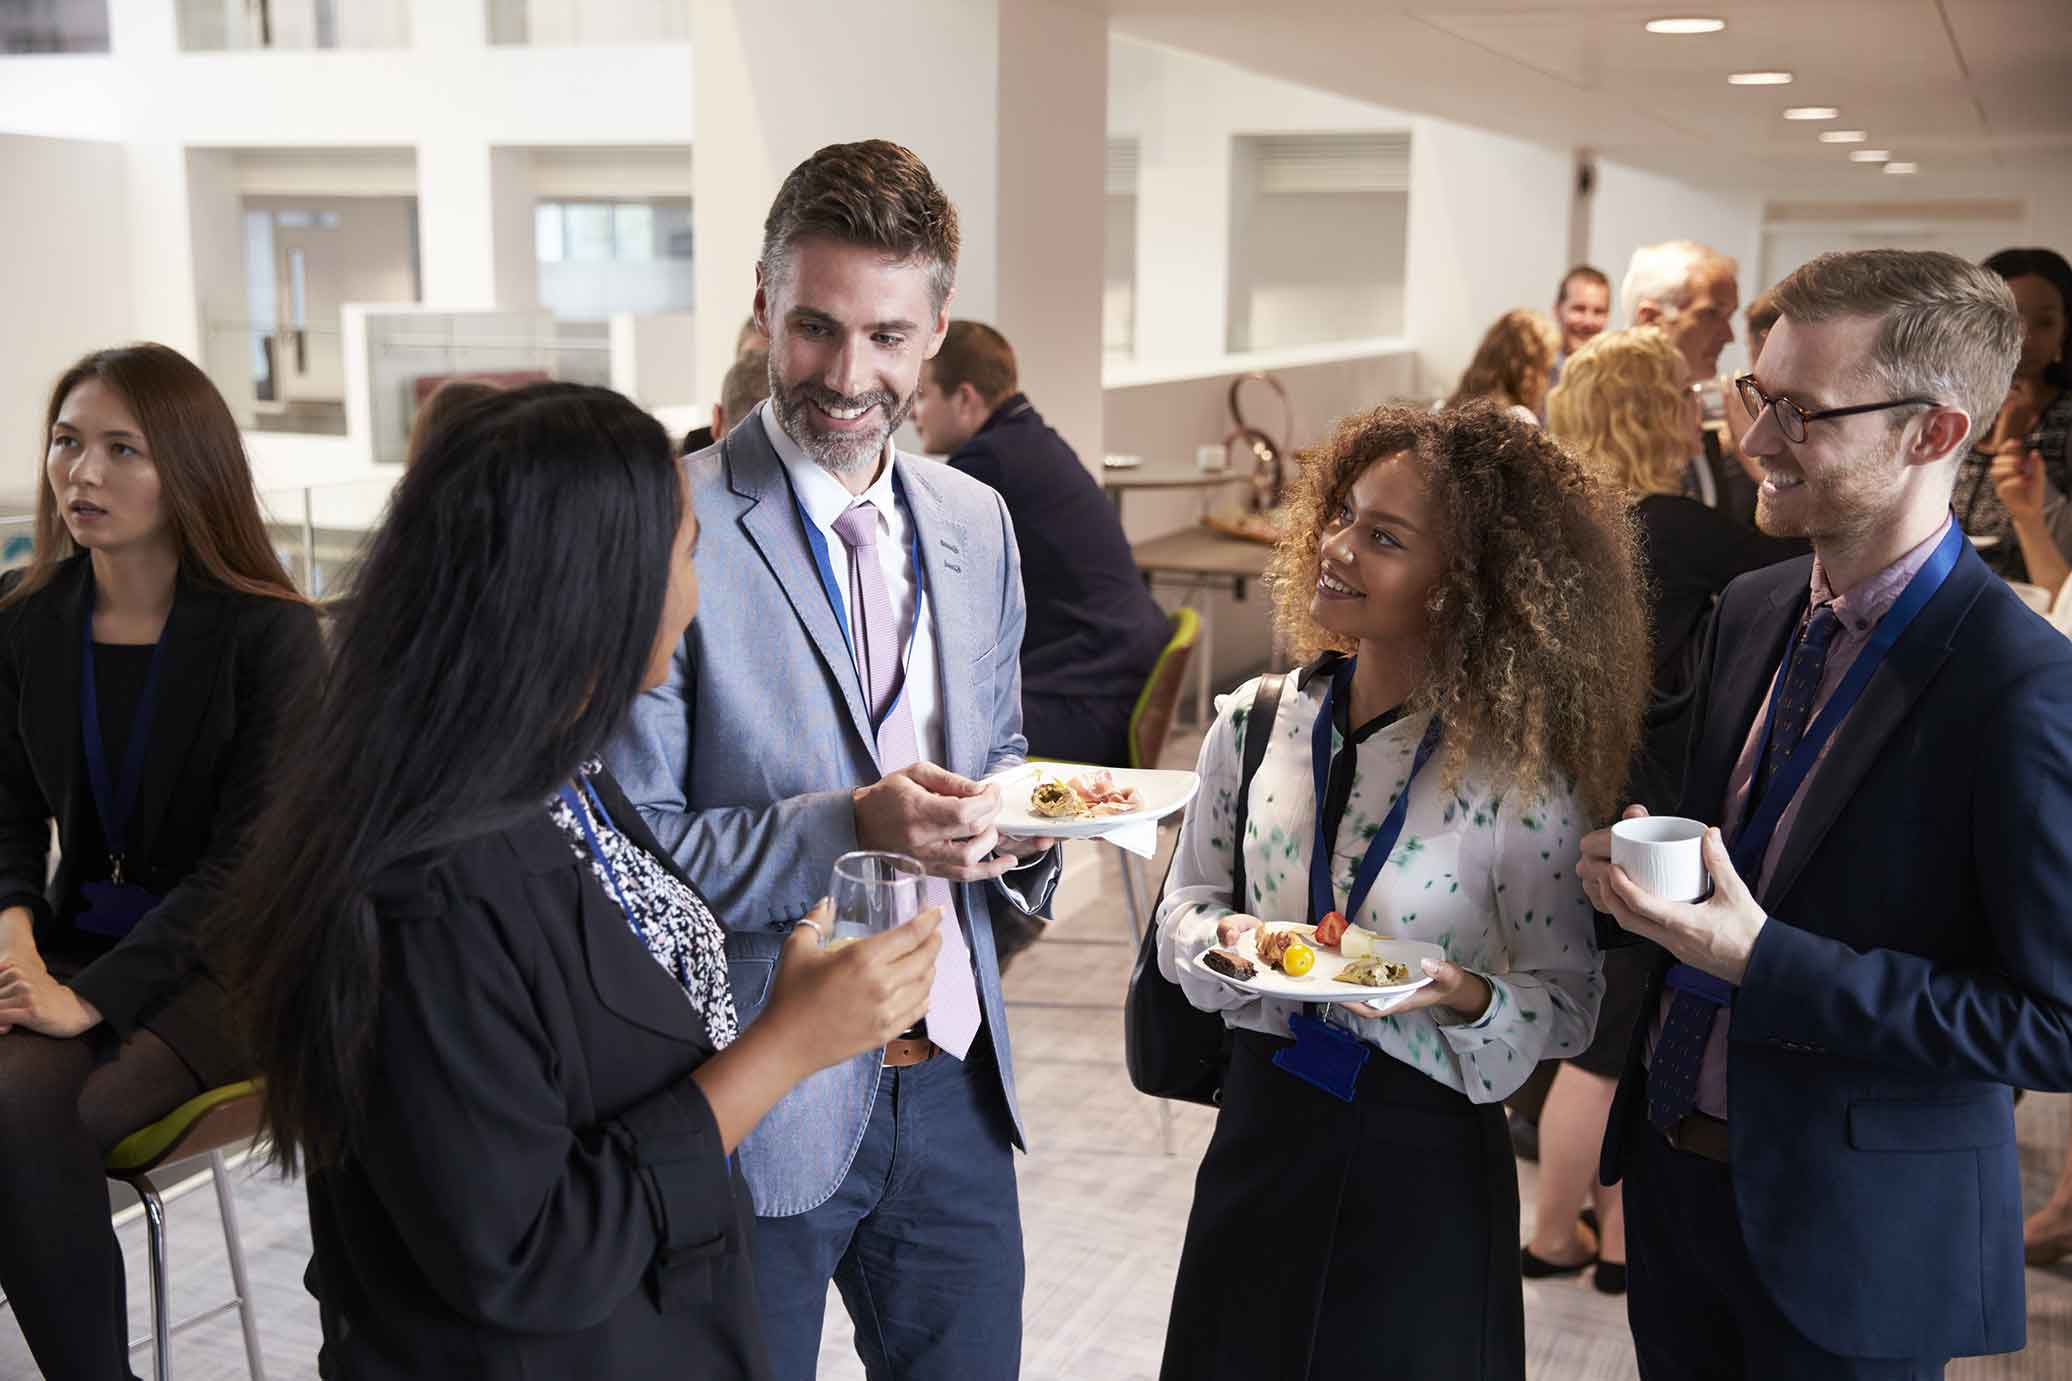 Networking-for-Accountants-FA-05-28-2018